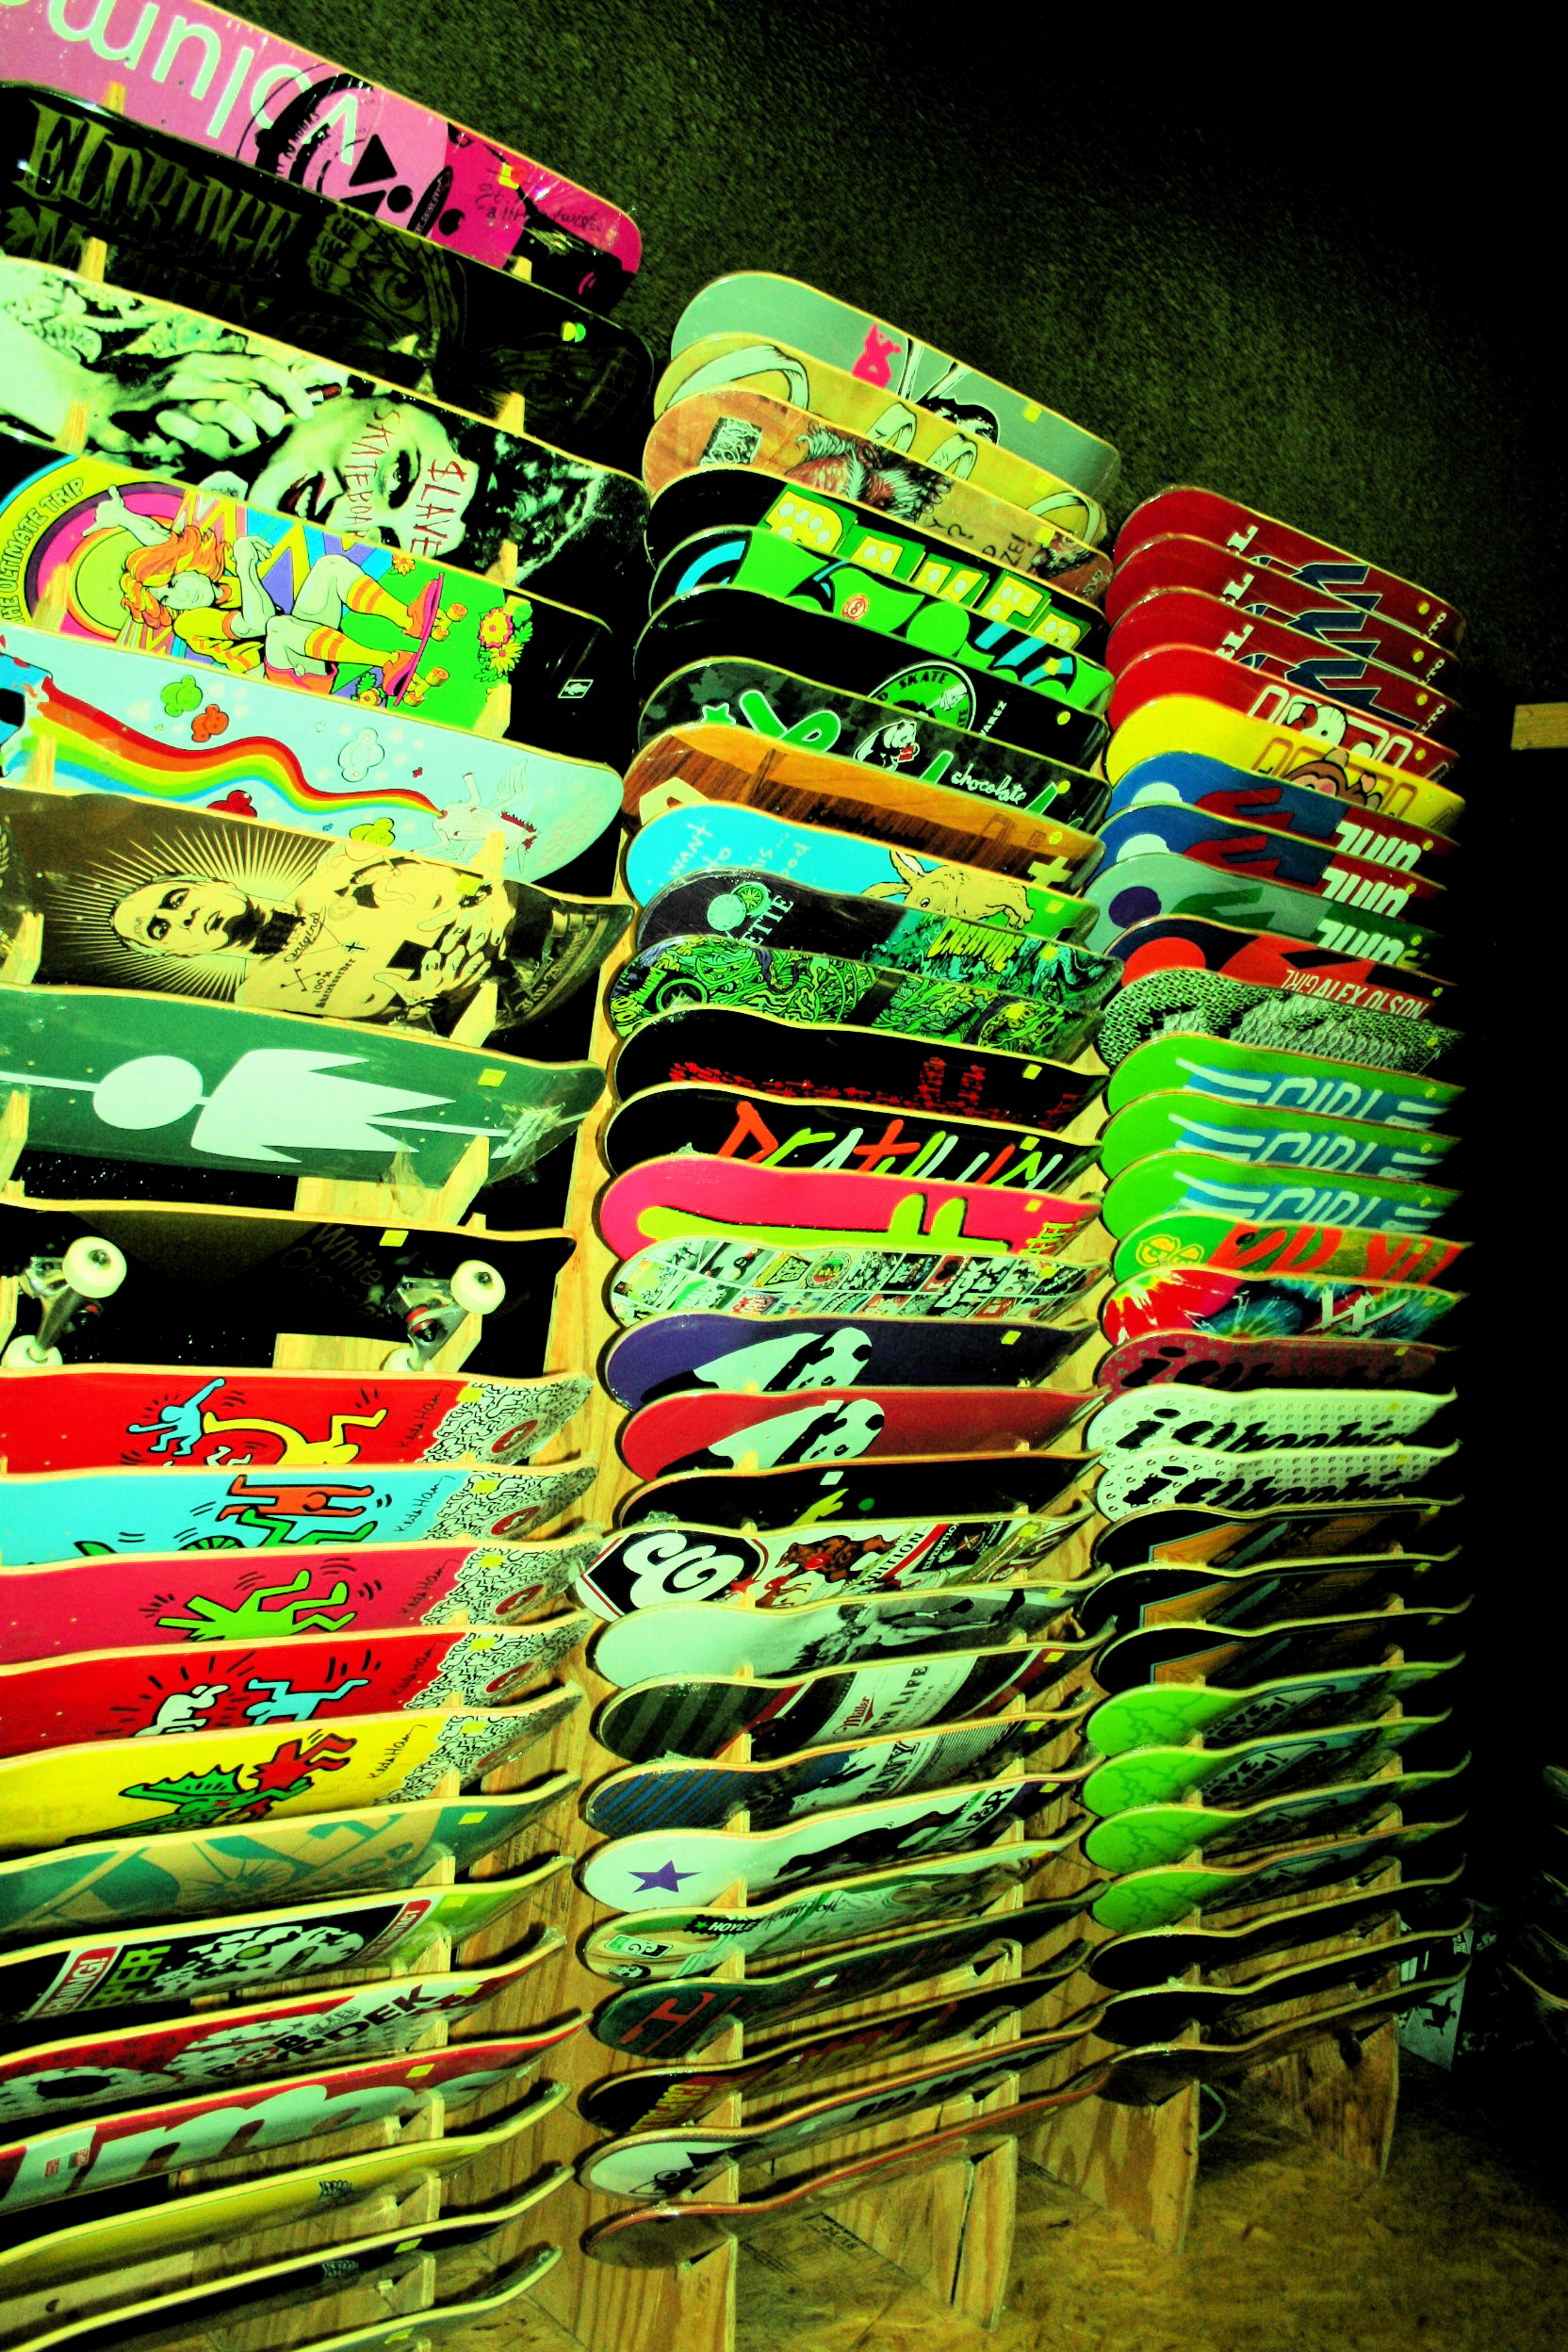 boardz on boardz on boardz.